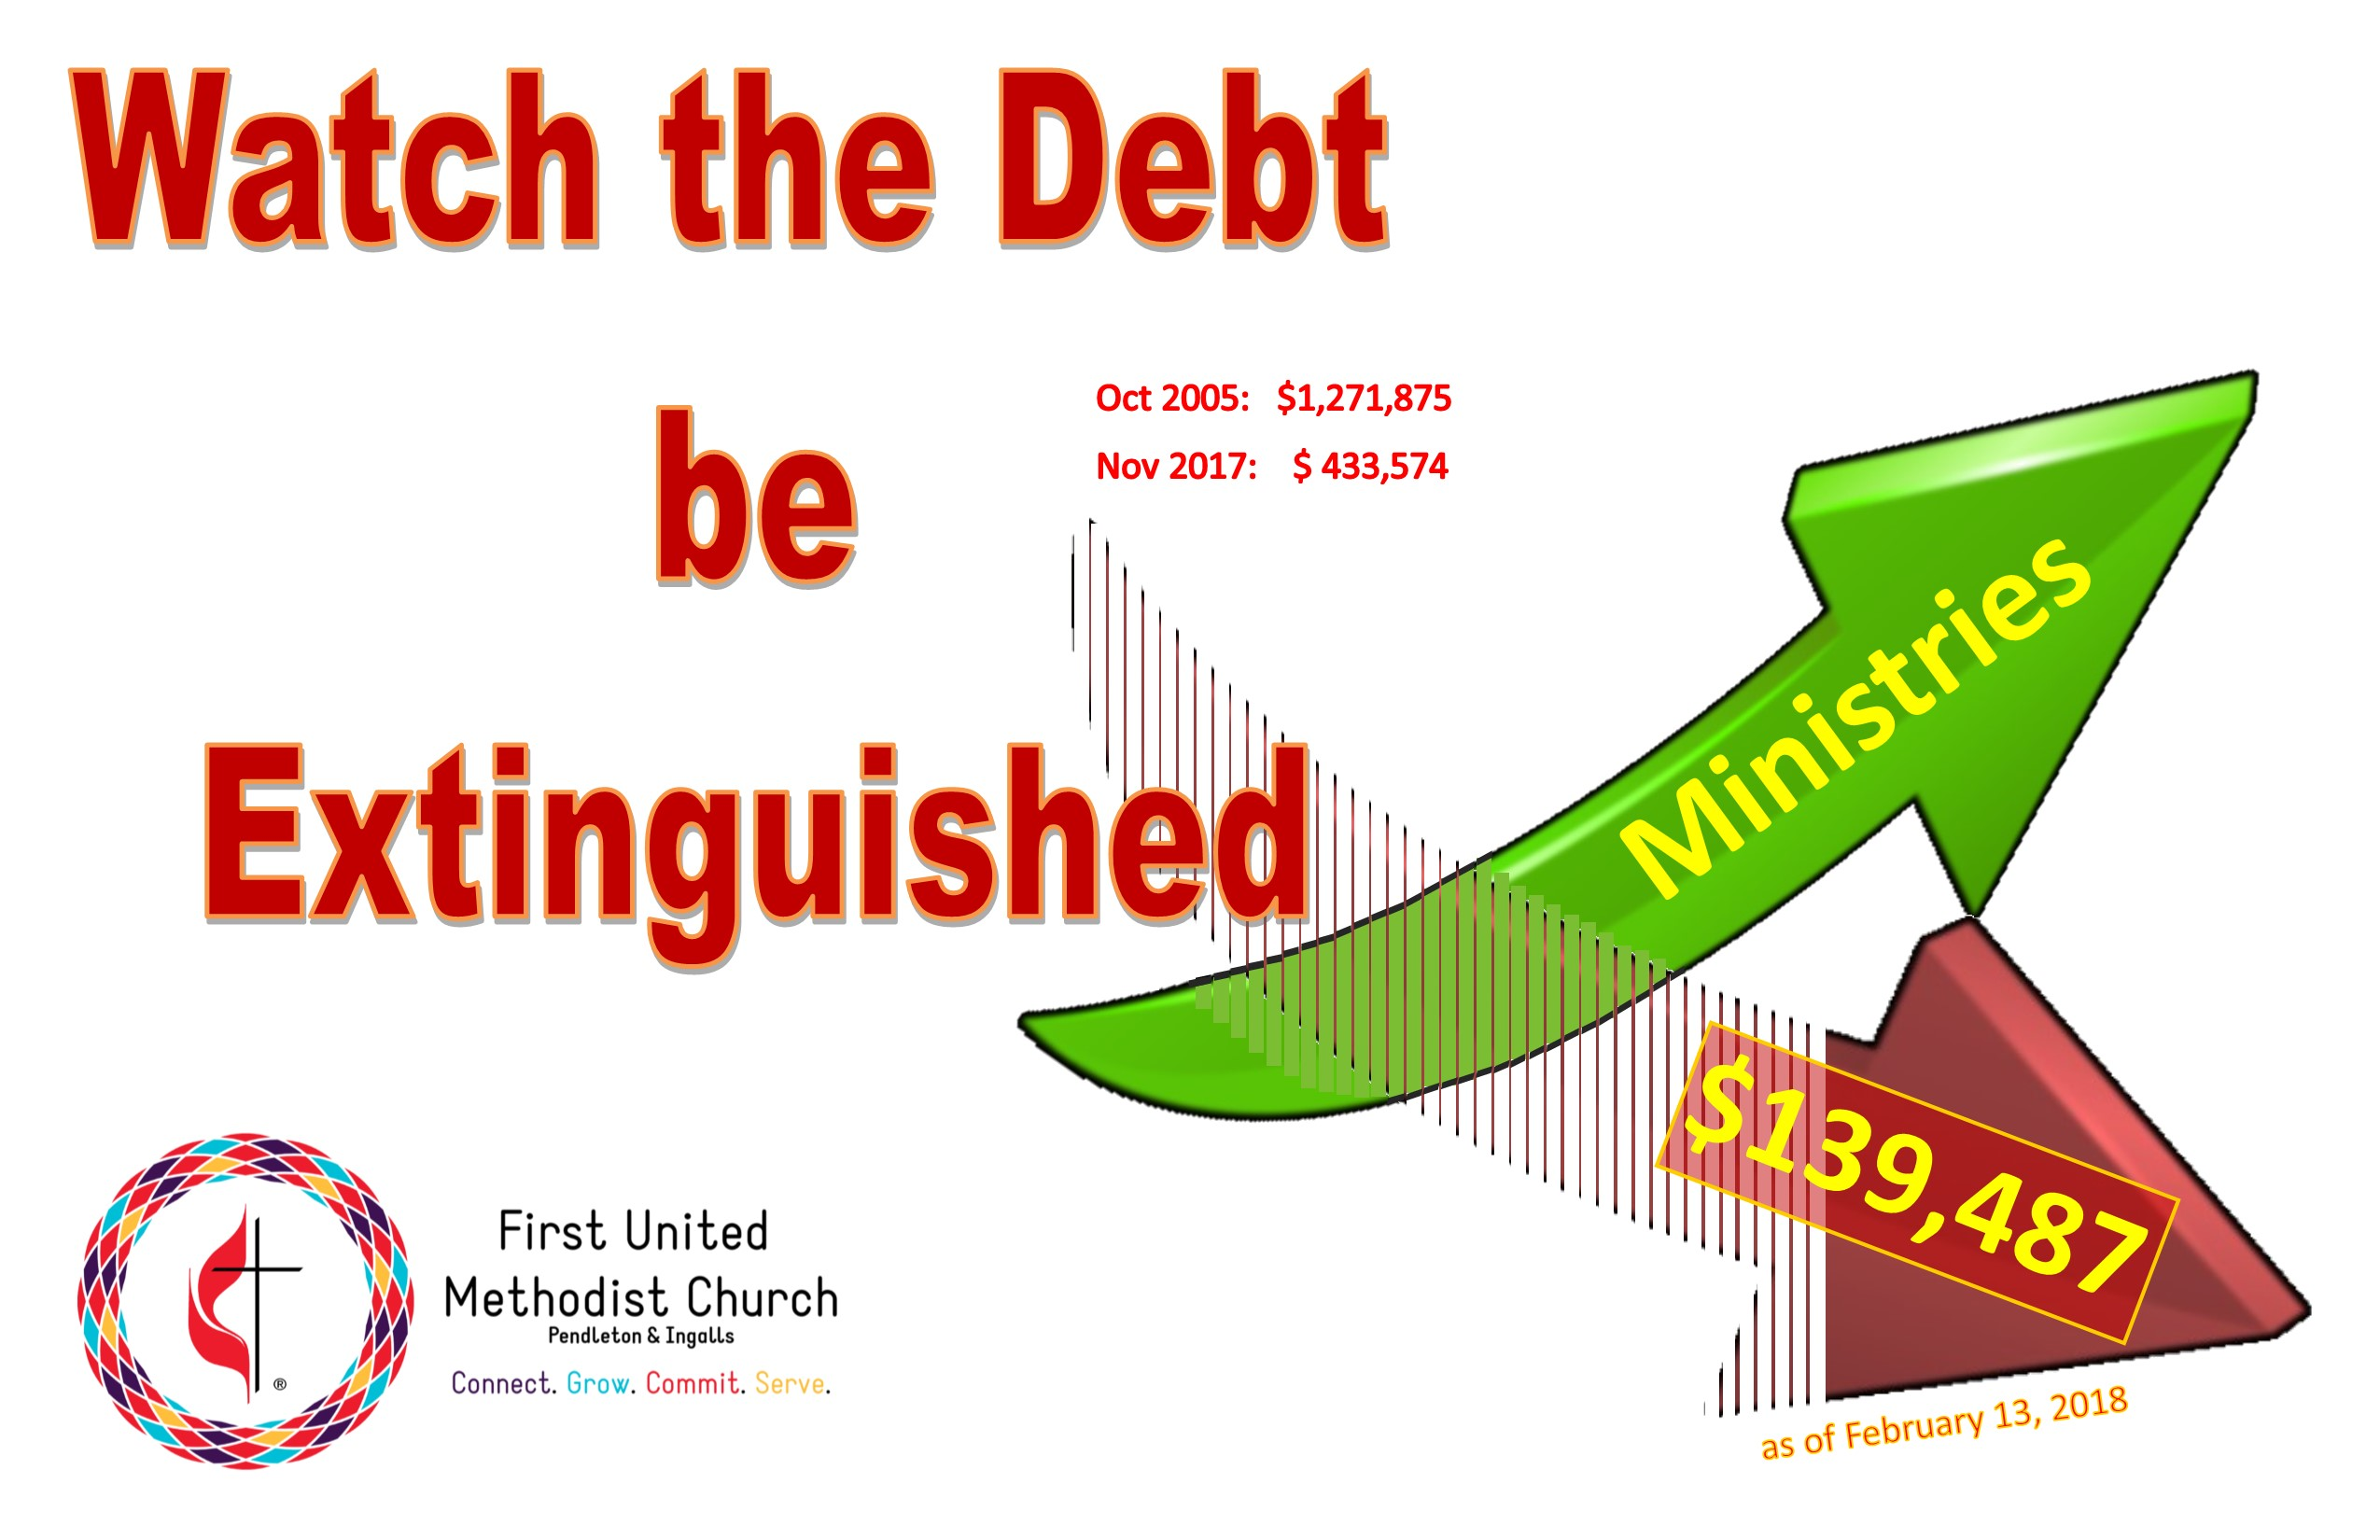 02 13 2019 The Debt thermometer